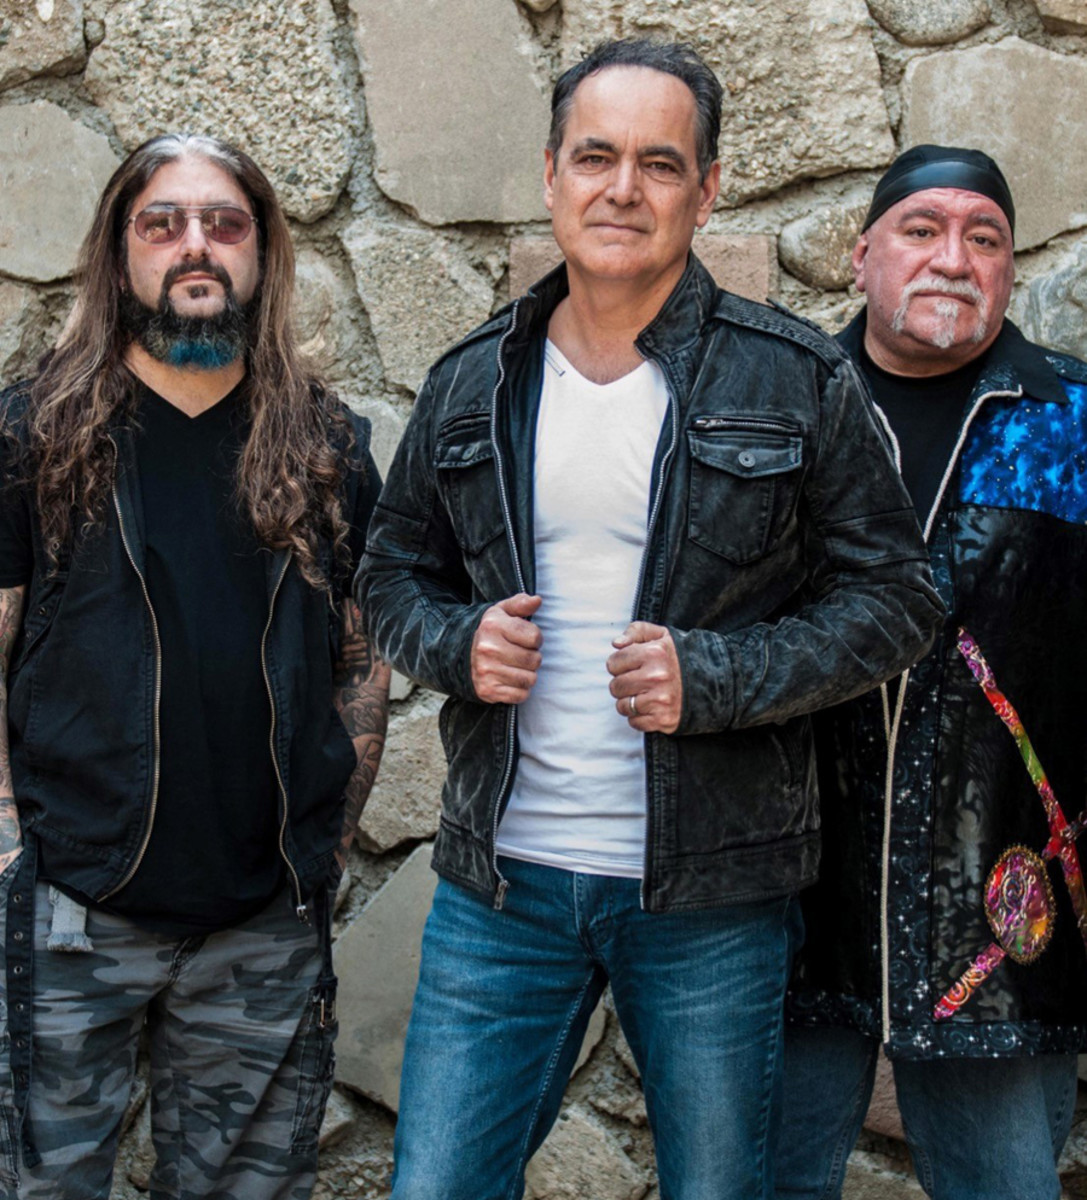 Cover to Cover project (L-R): Mike Portnoy, Neal Morse and Randy George. Publicity Photo.